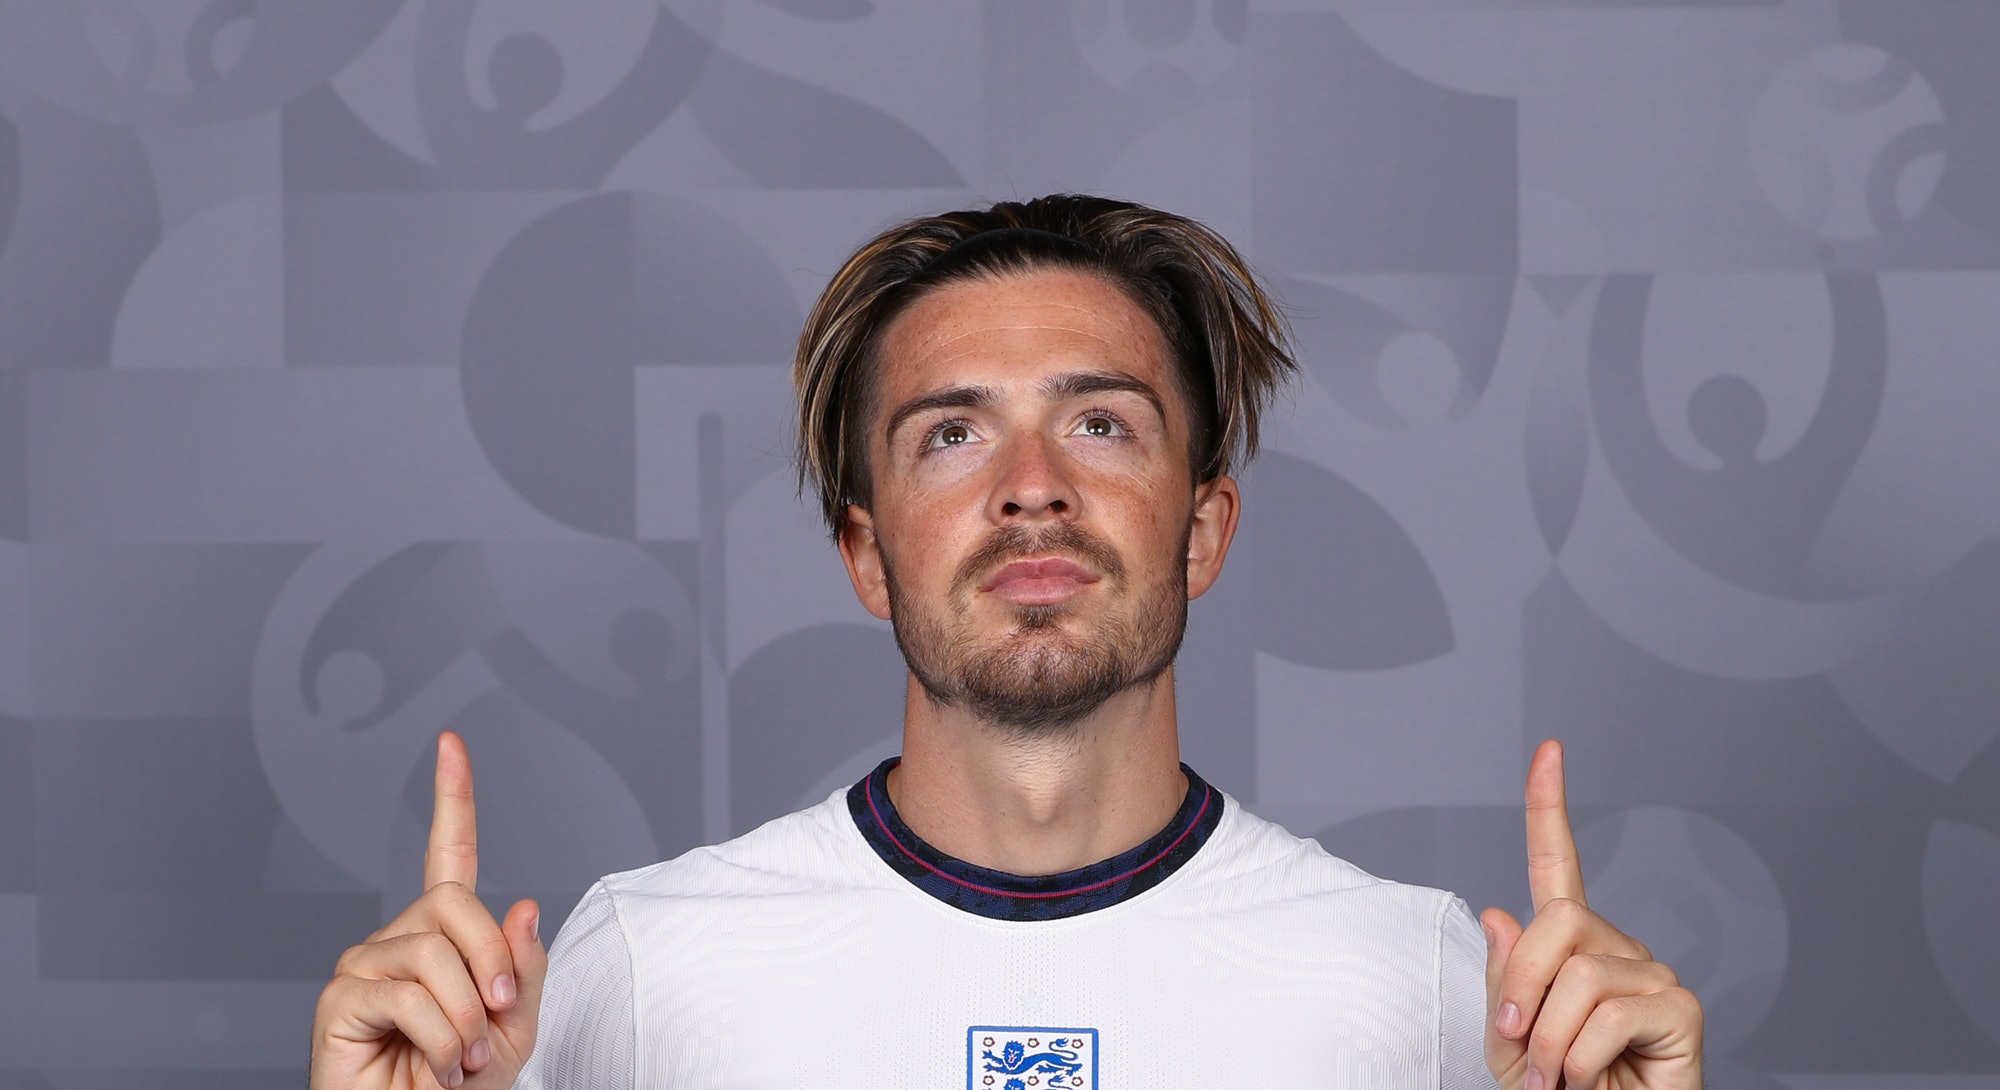 Jack Grealish of England poses during the official UEFA Euro 2020 press day